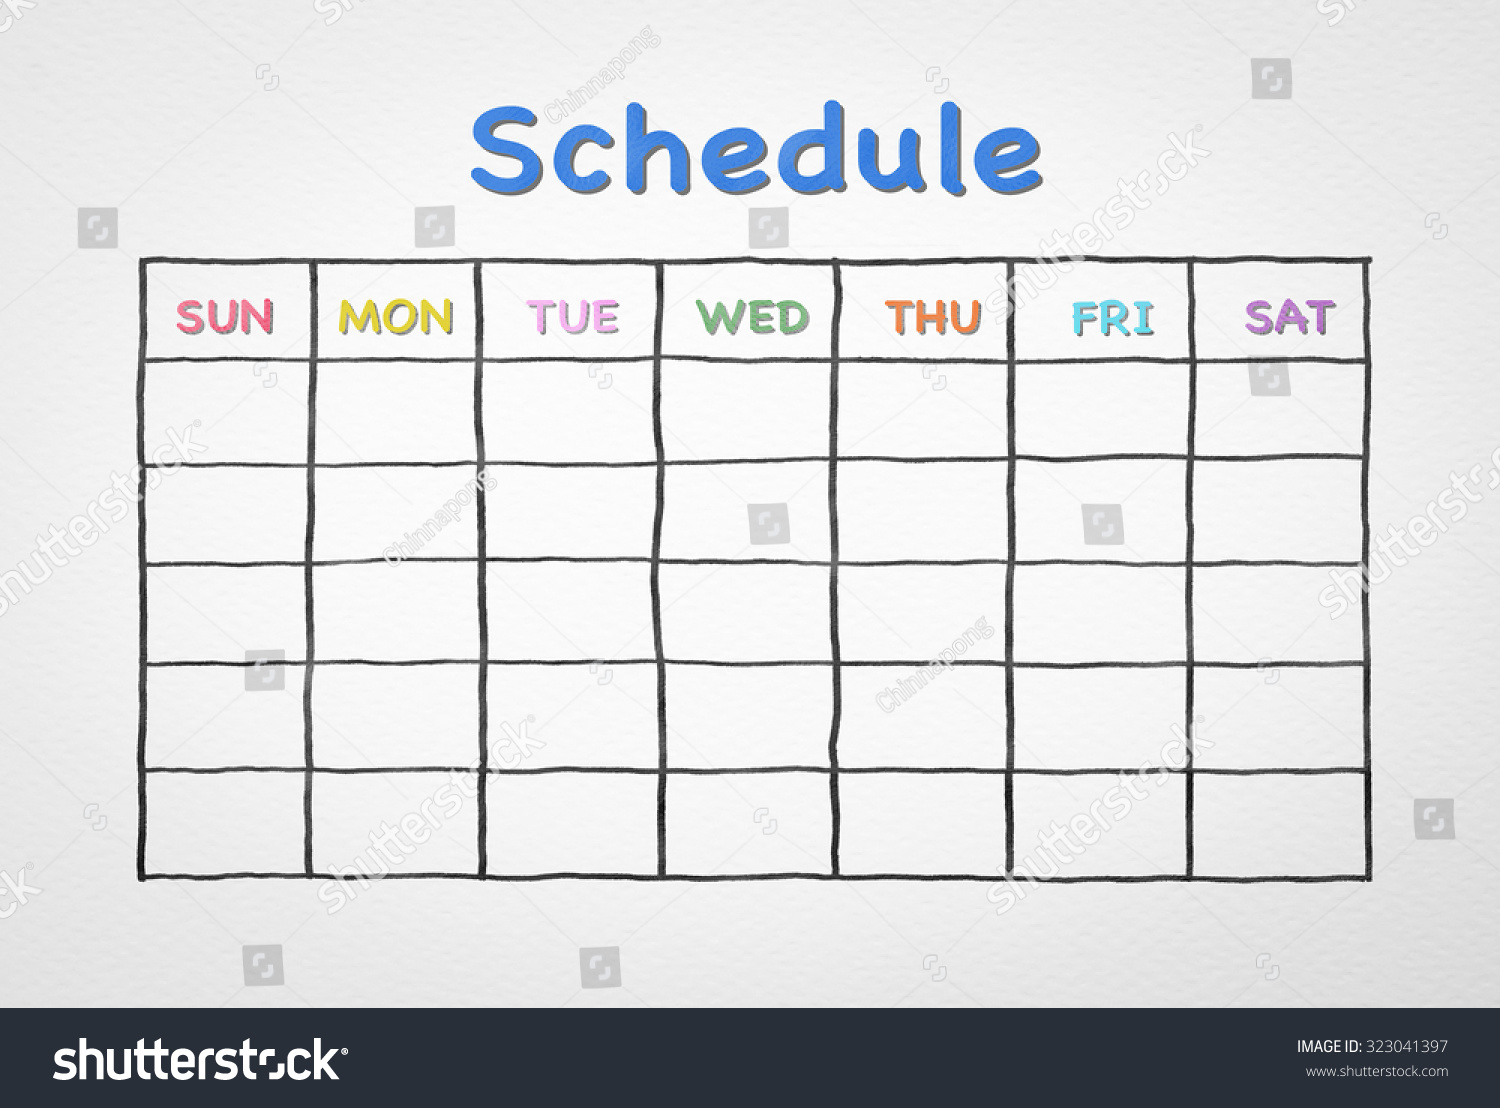 hand pen doodle sketch drawing blank stock illustration hand pen doodle sketch drawing of blank monthly grid timetable schedule on white watercolor paper background